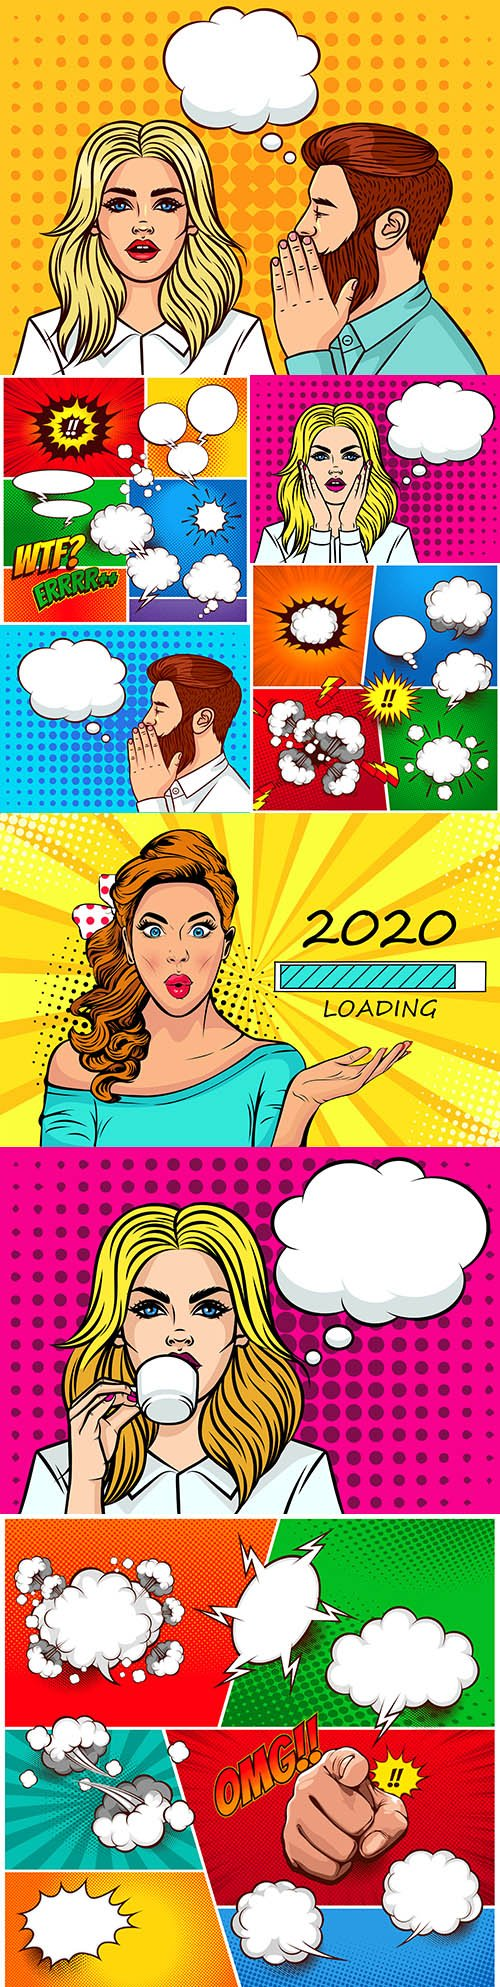 Young beautiful girl and speech bubbles style pop art